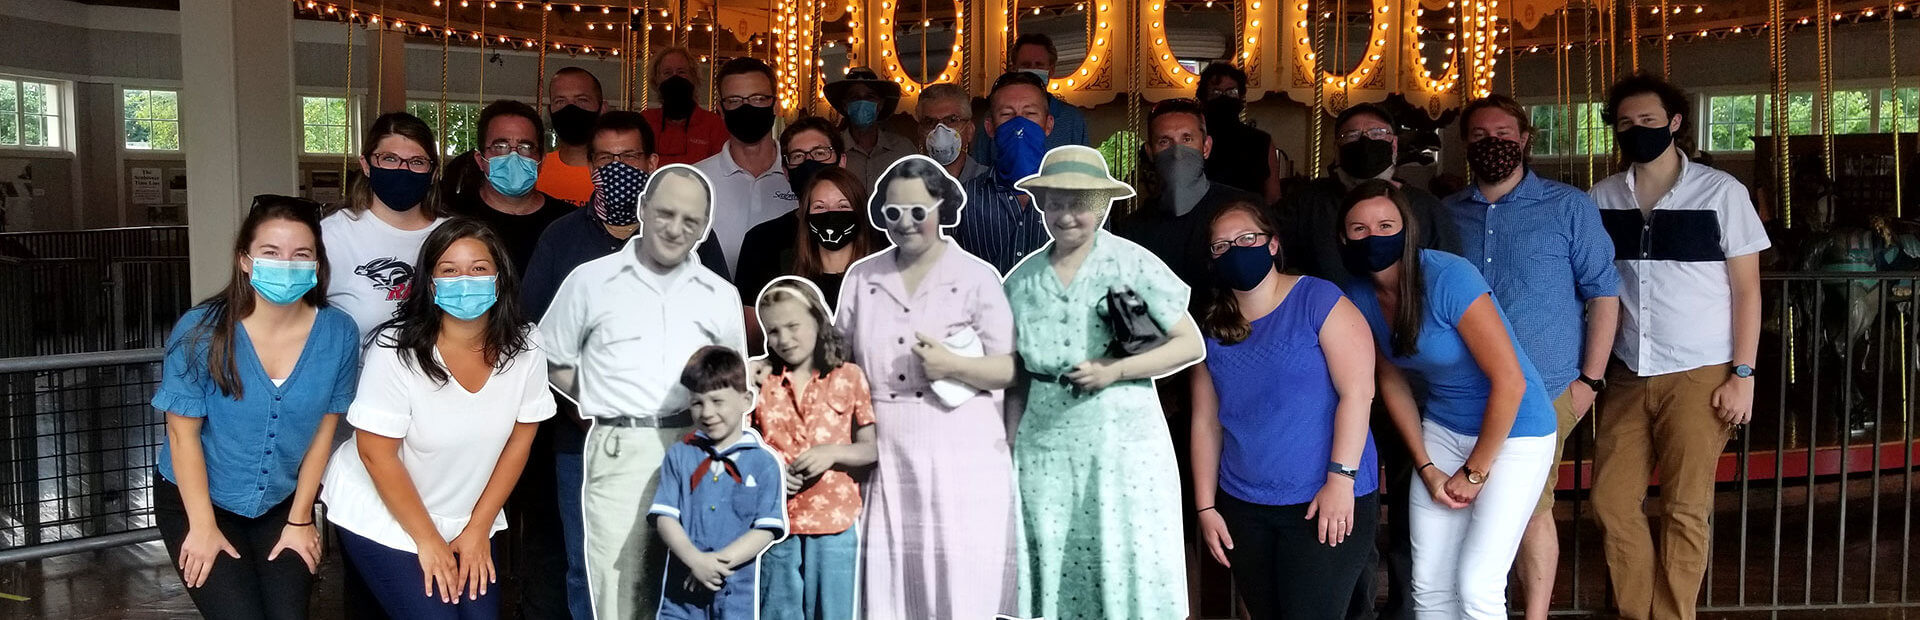 Park staff posing with family cutout.